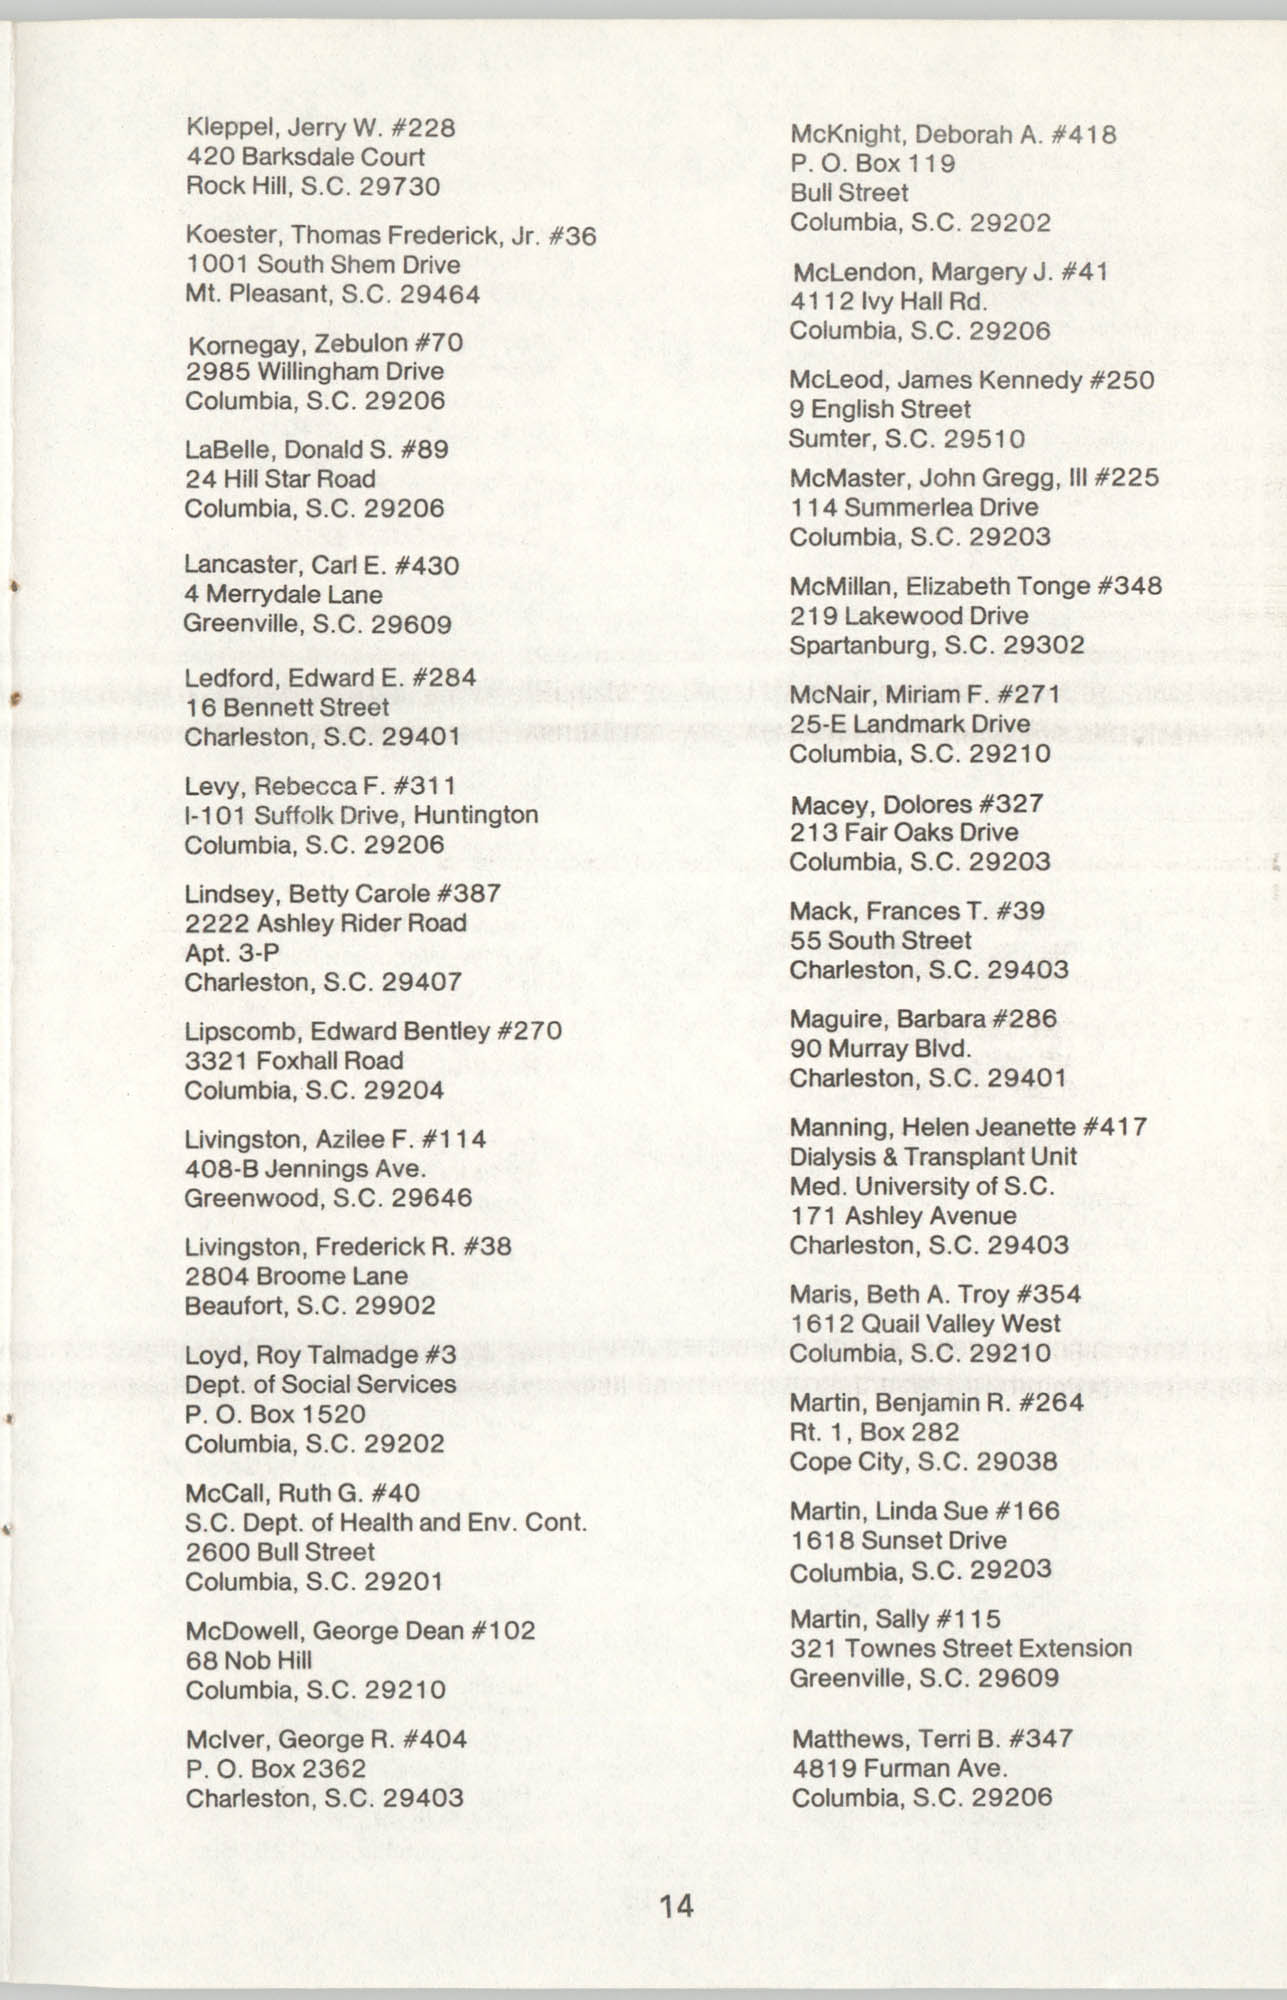 State of South Carolina Directory of Registered Social Workers, 1977, Page 14